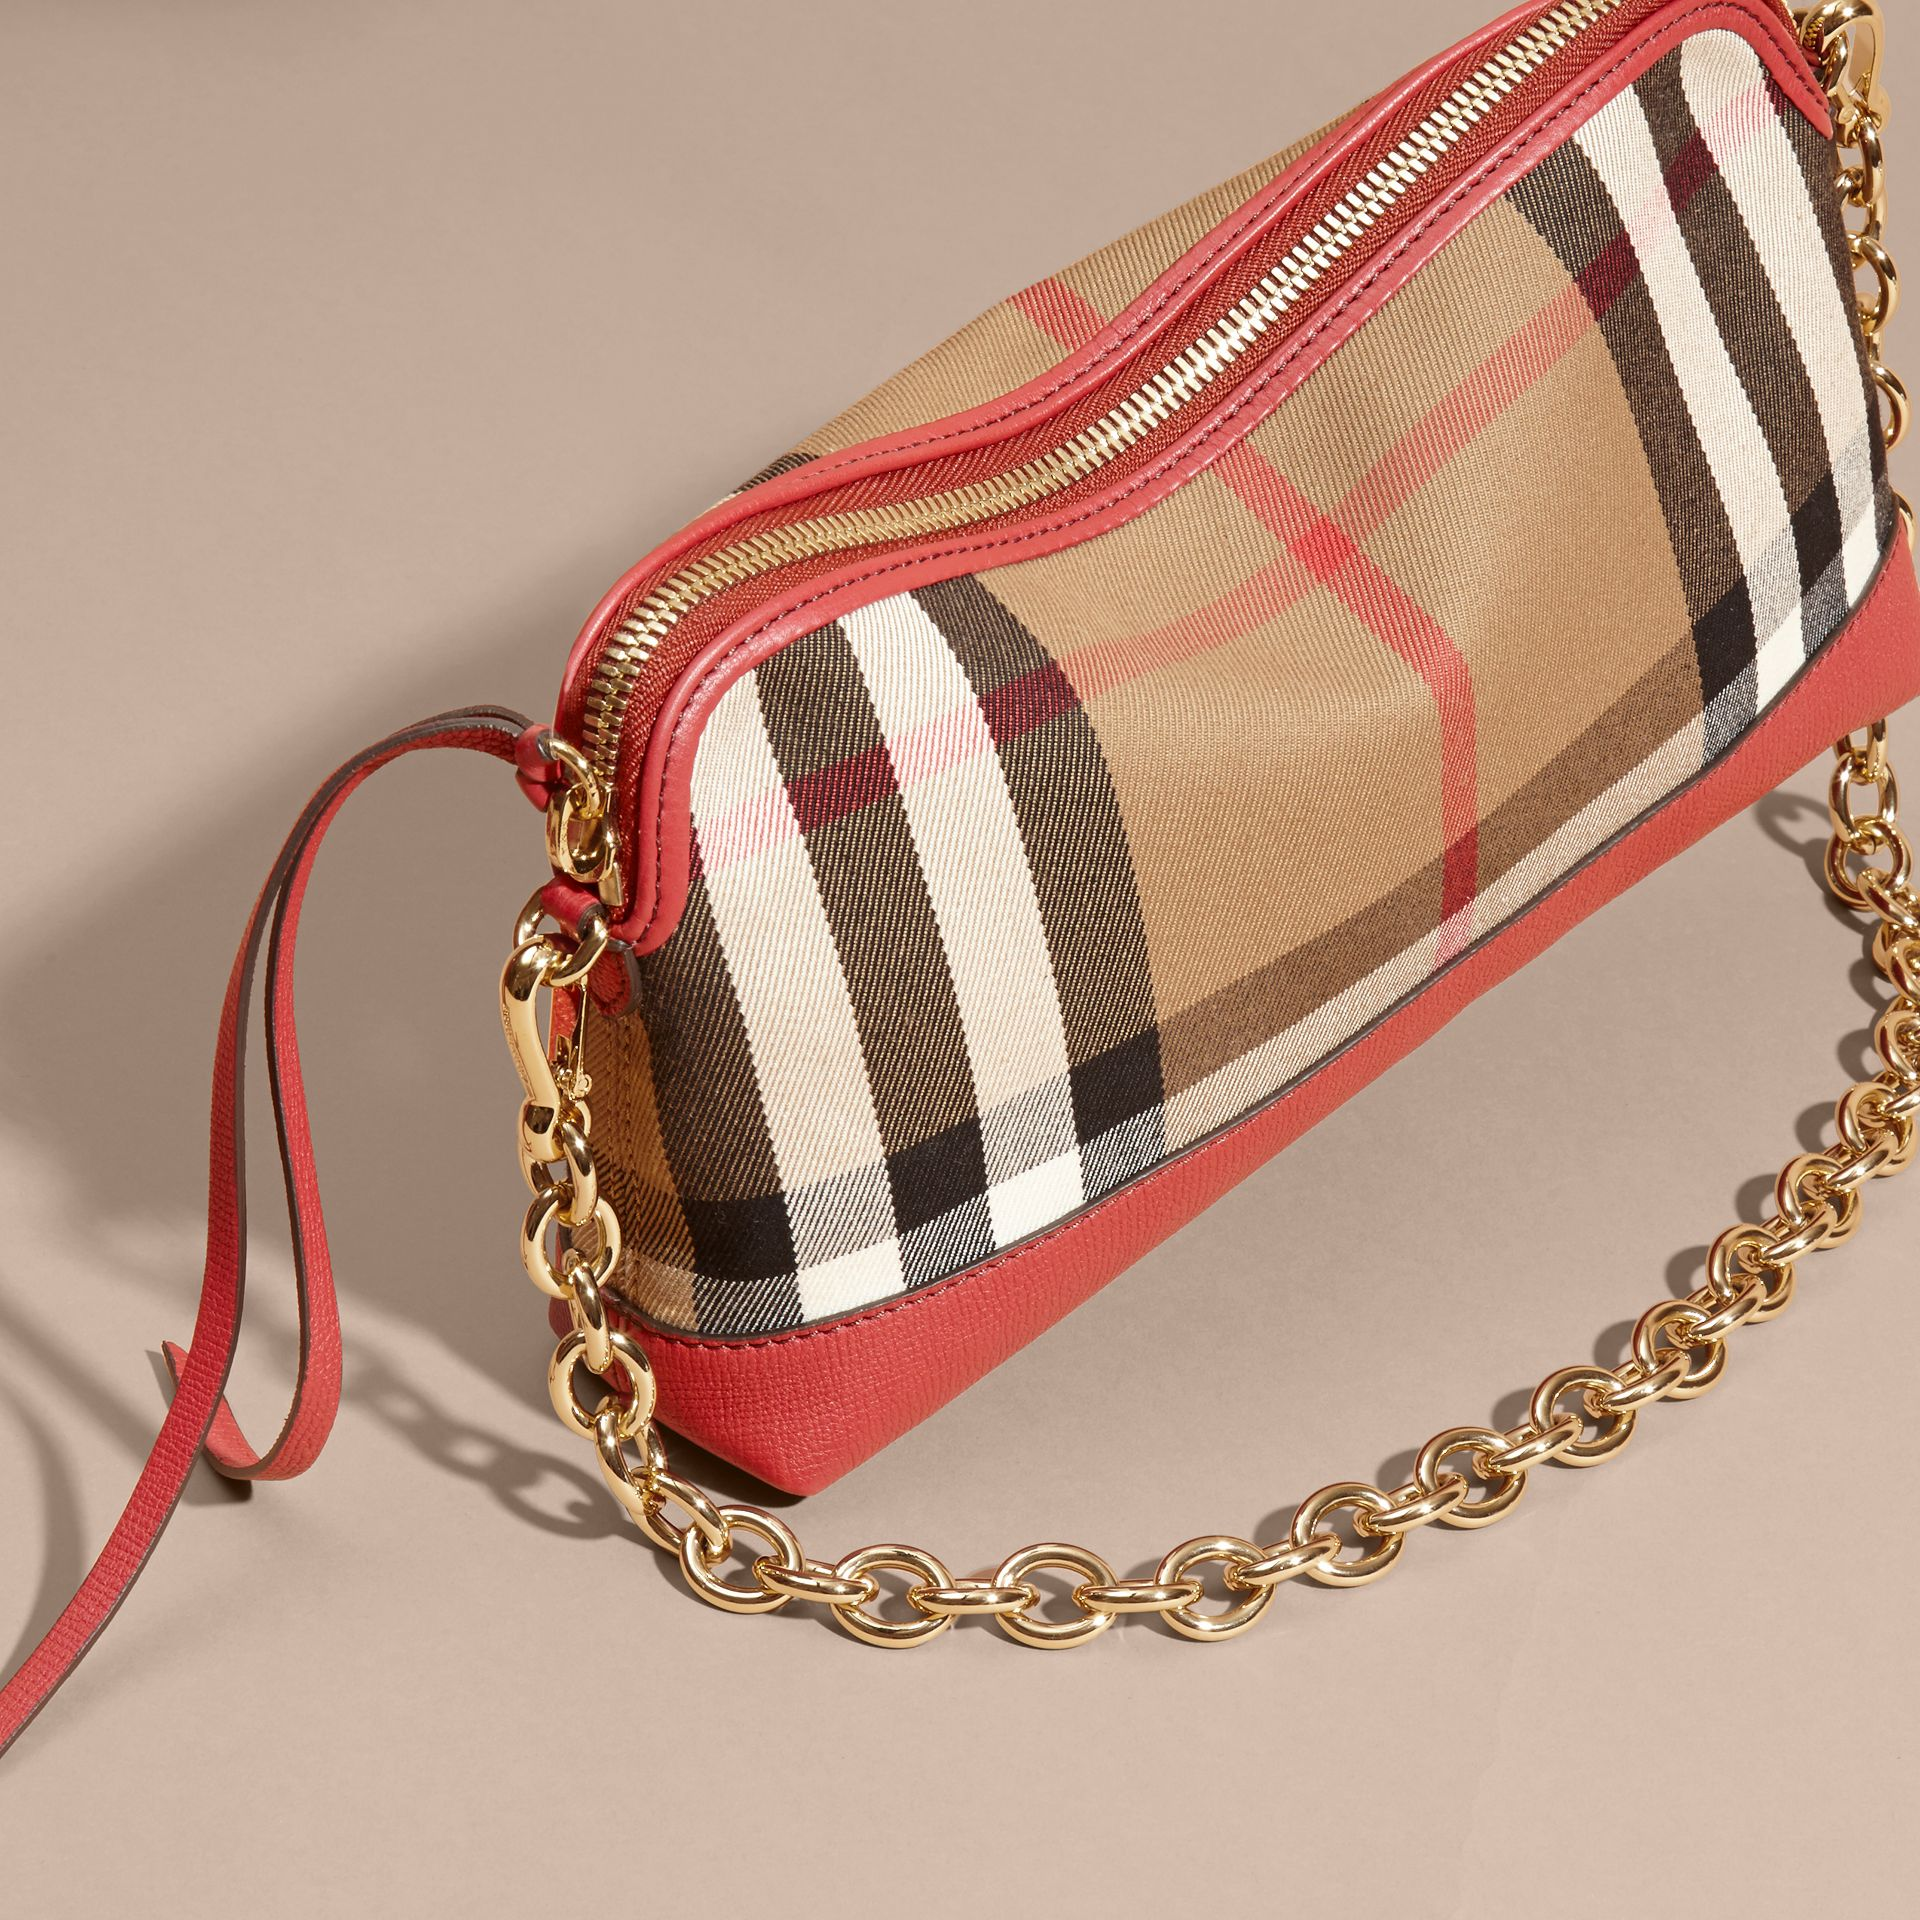 House Check and Leather Clutch Bag in Russet Red - Women | Burberry - gallery image 8